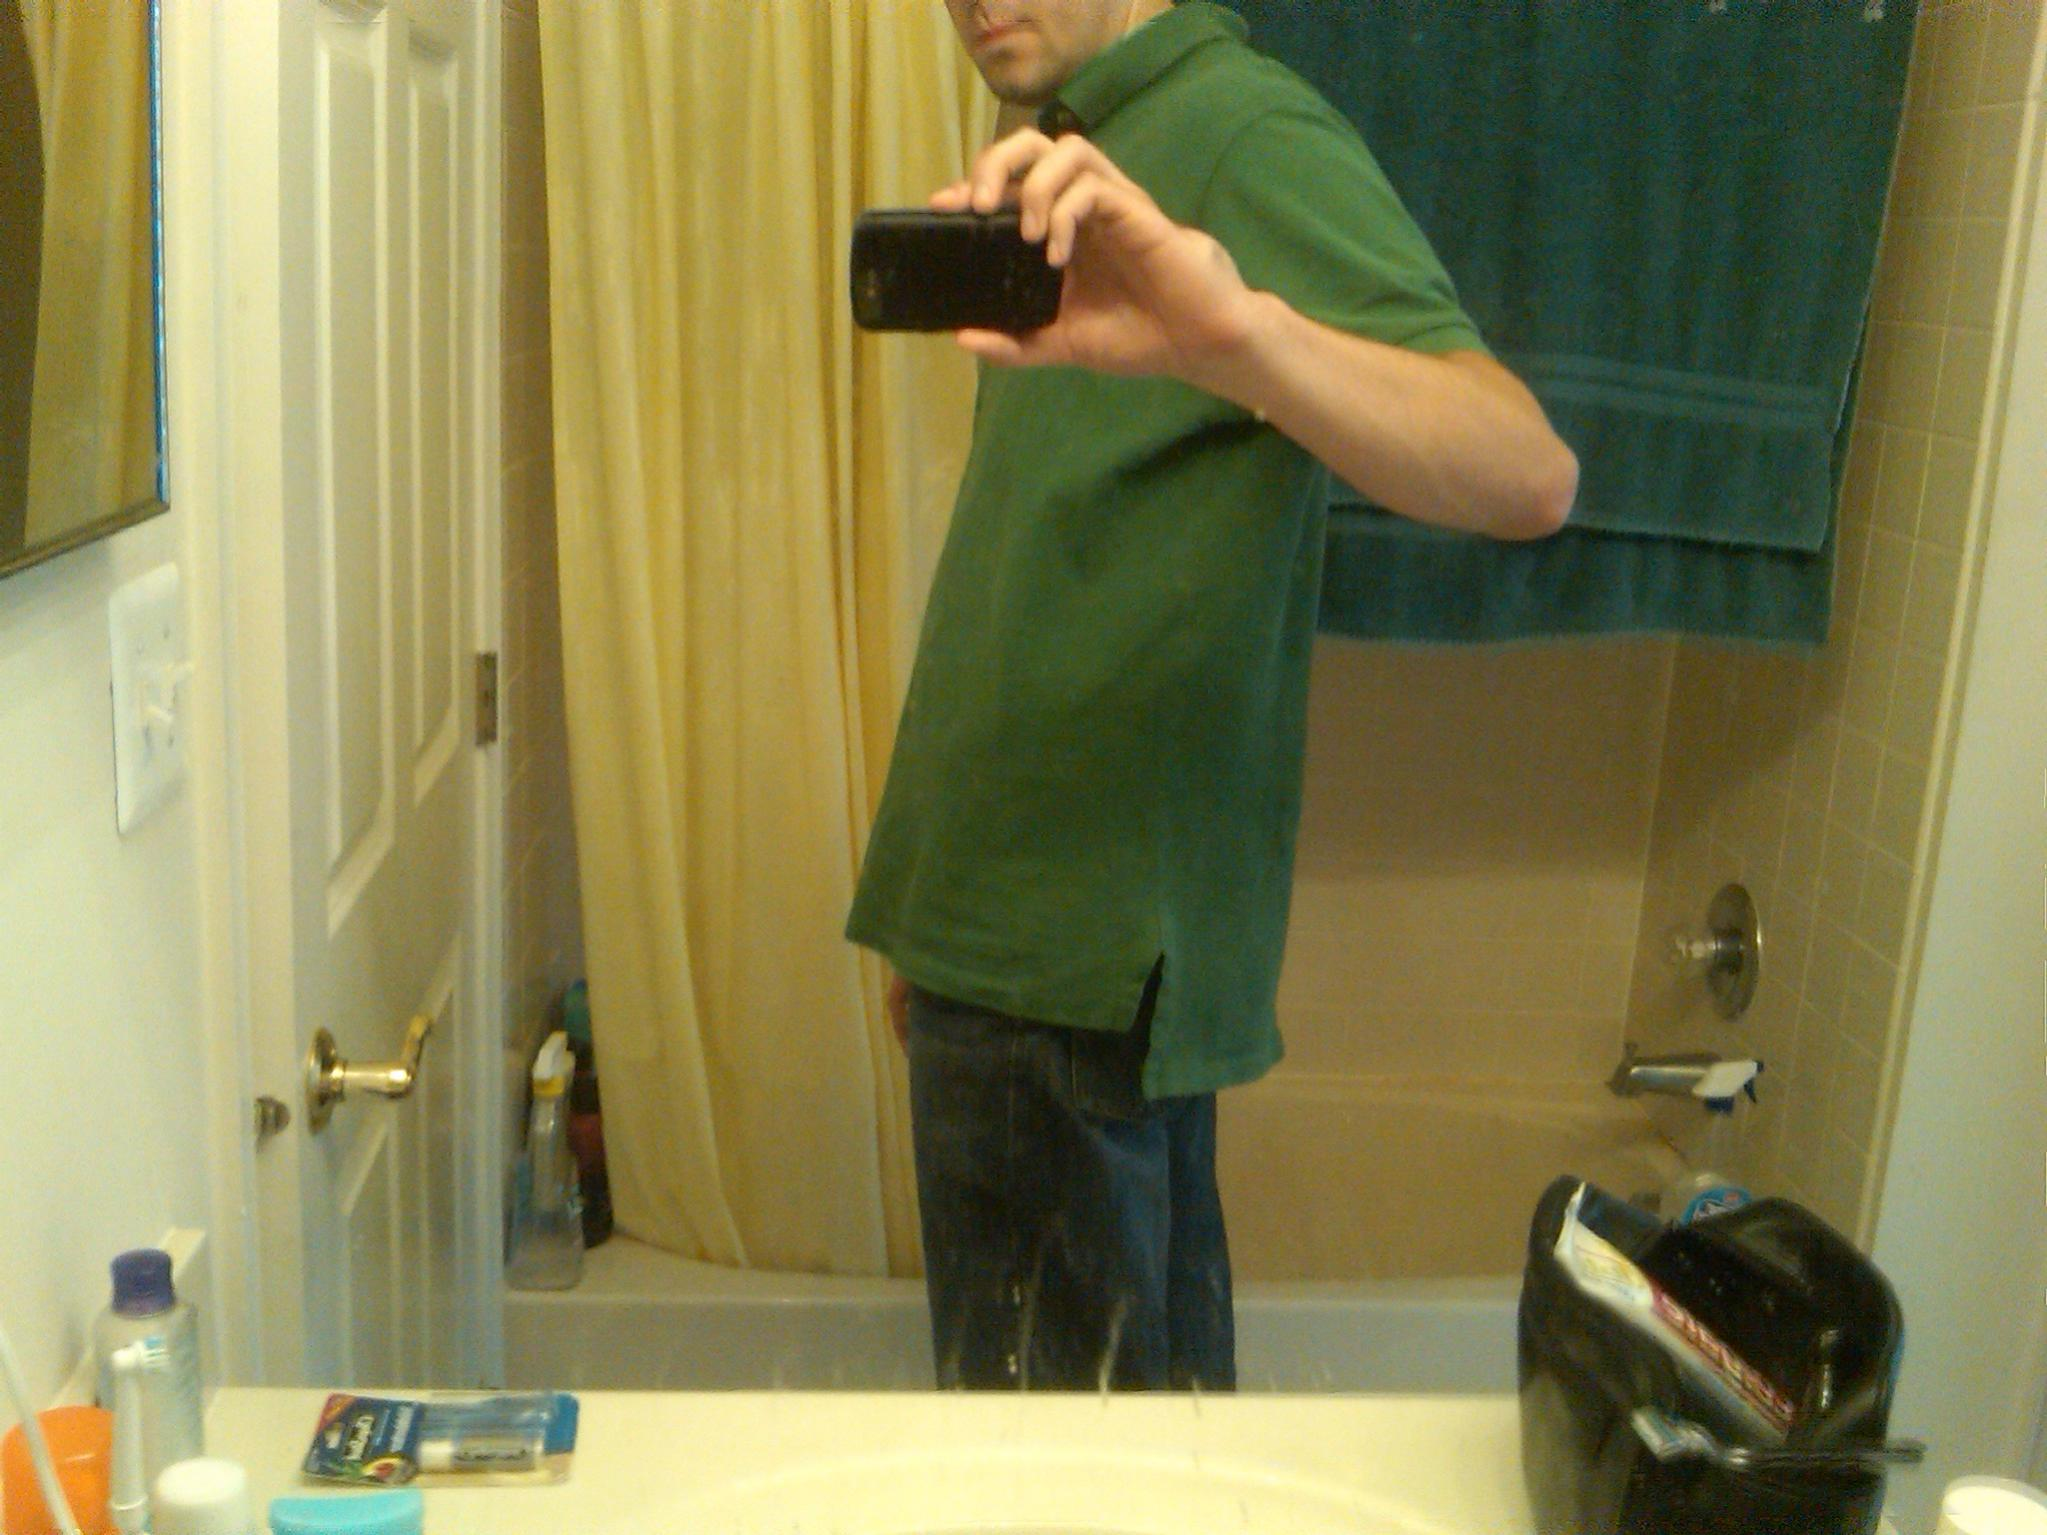 Let's See Your Pic's - How You Carry Concealed.-concealed-carry-2.jpg